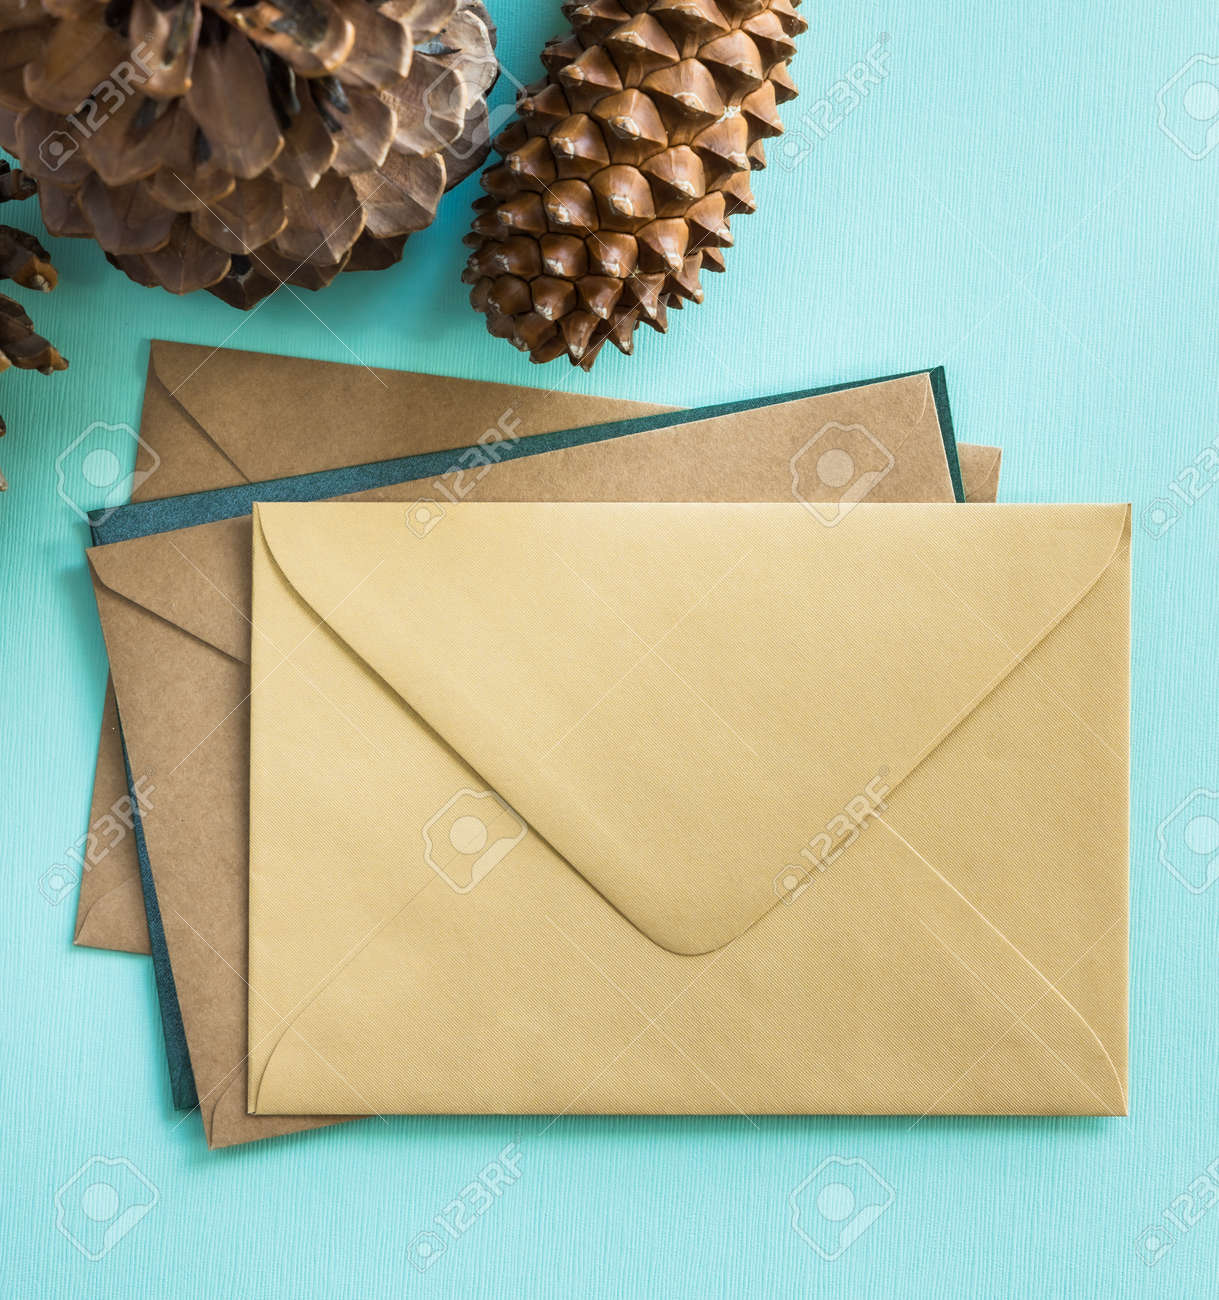 Many envelopes and pine cones on turquoise background. Winter holidays concept. - 156003956